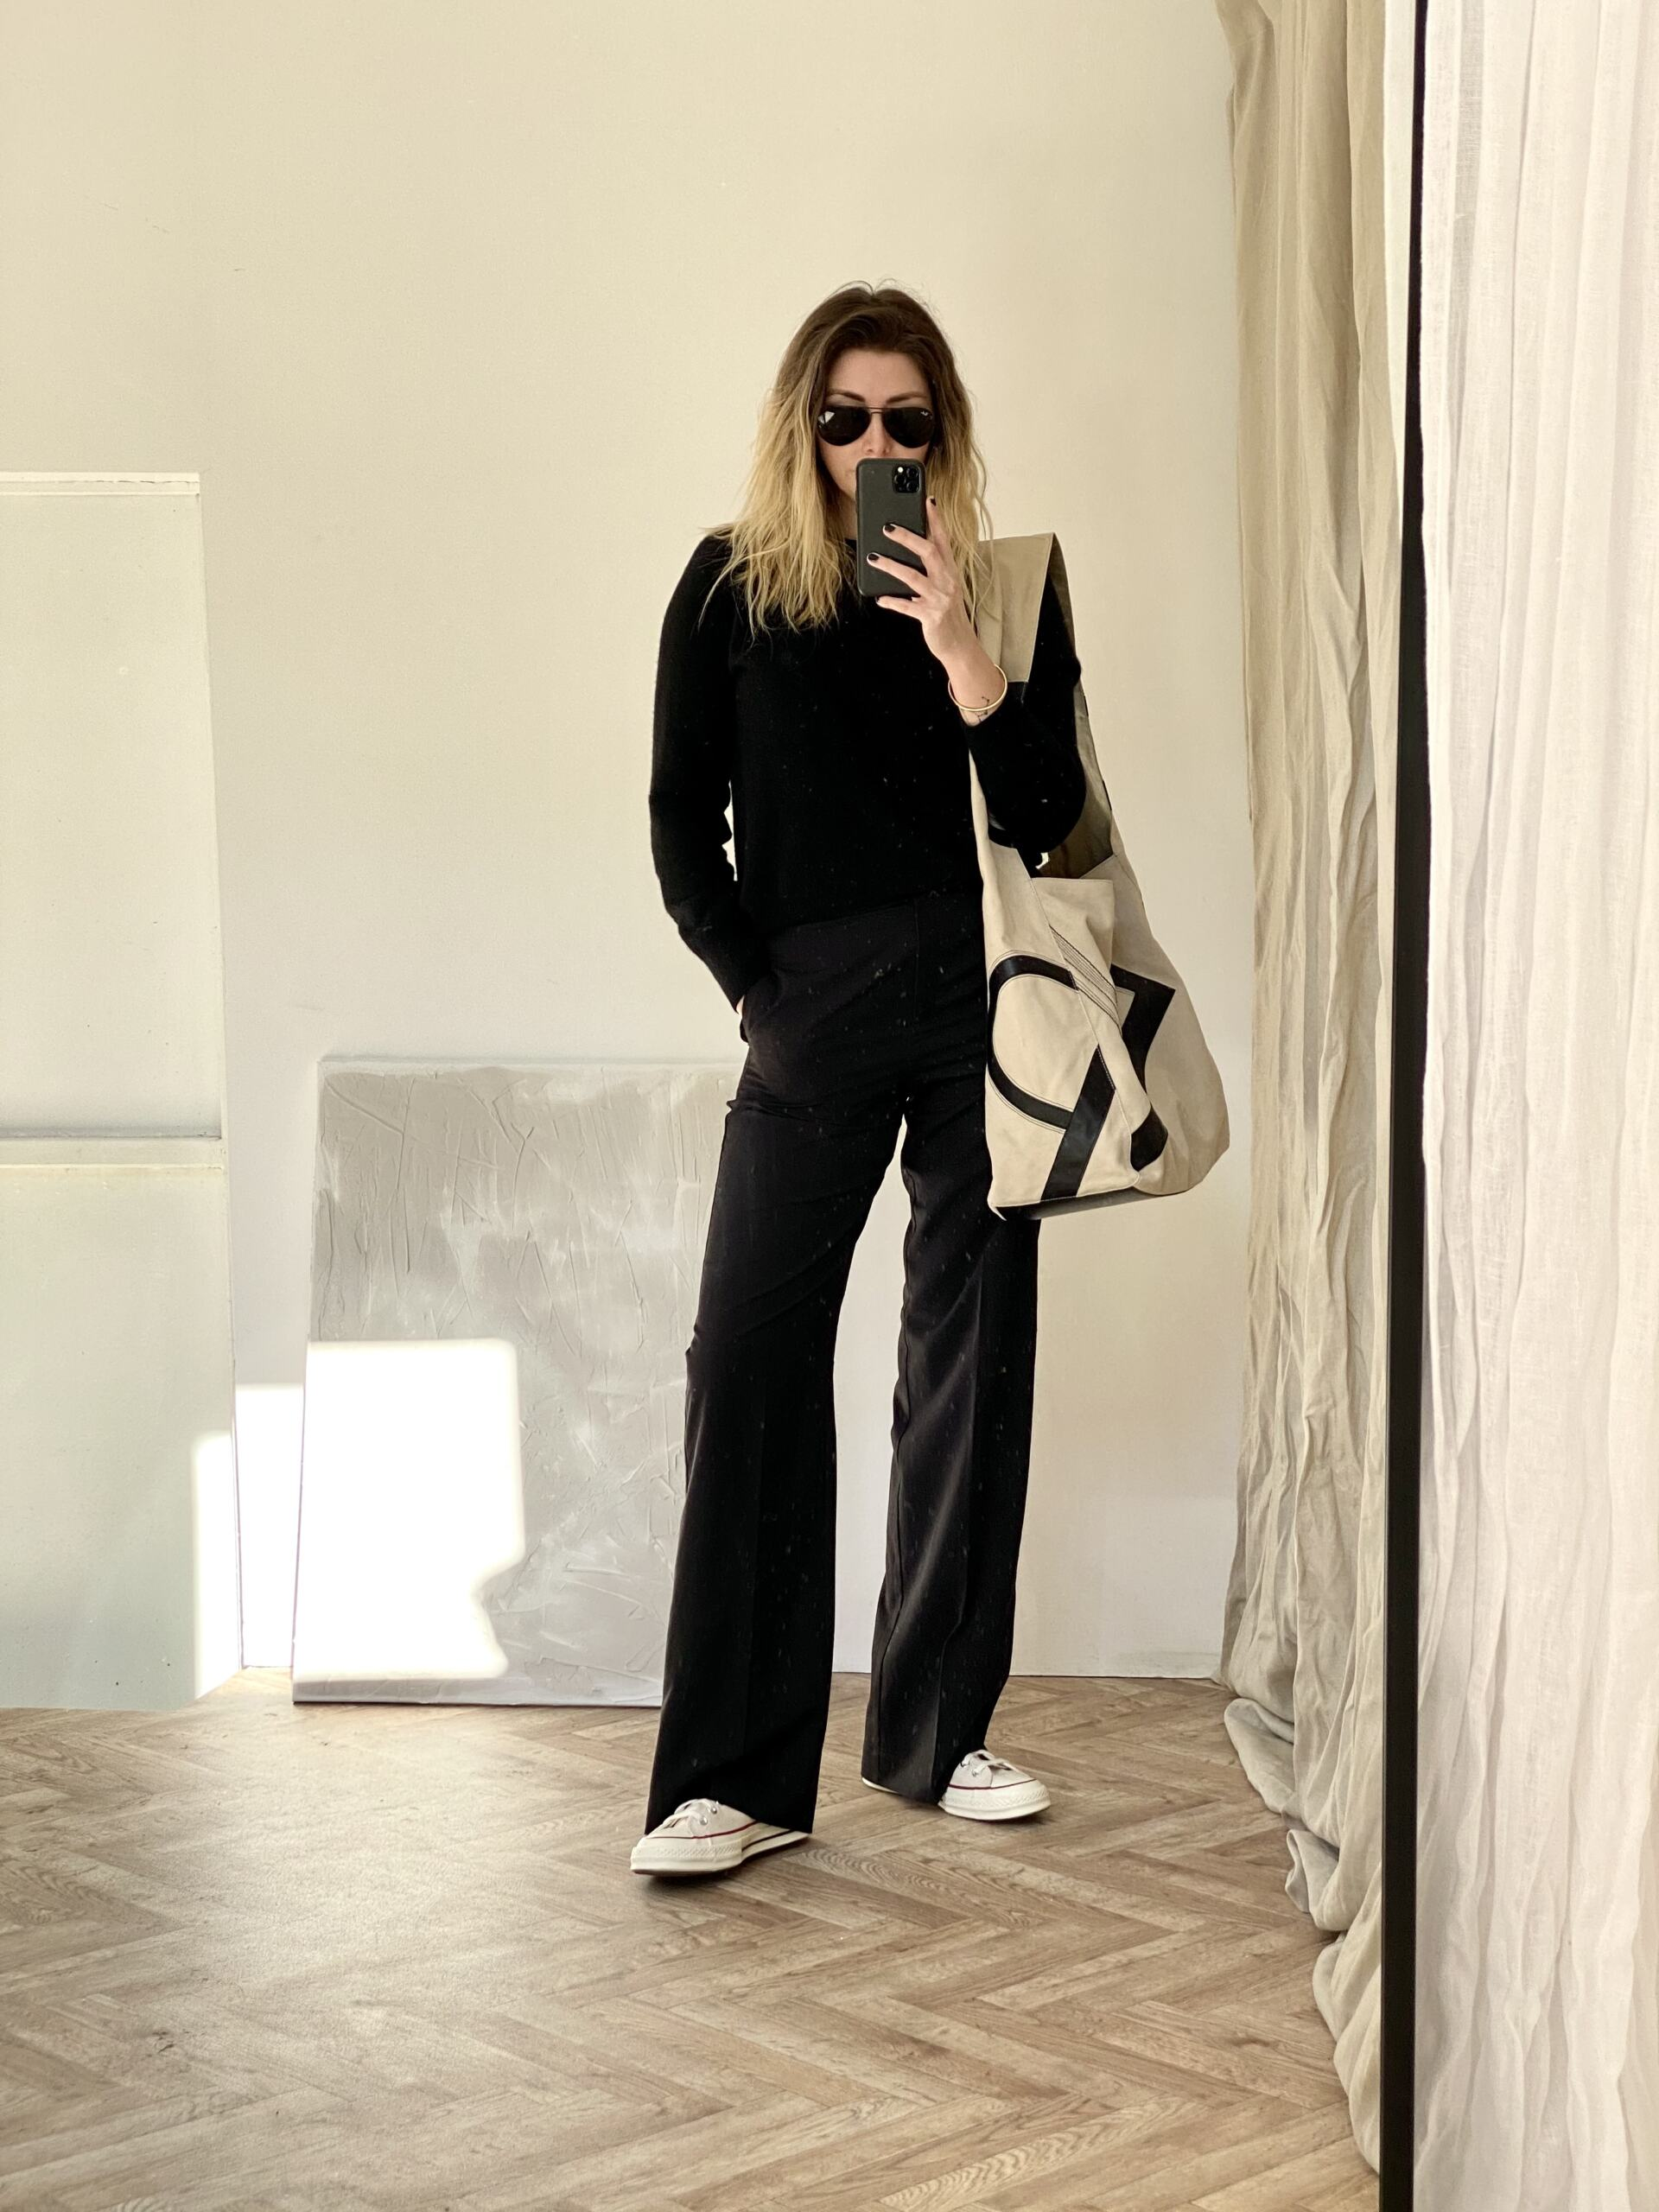 All black outfit with xl bag